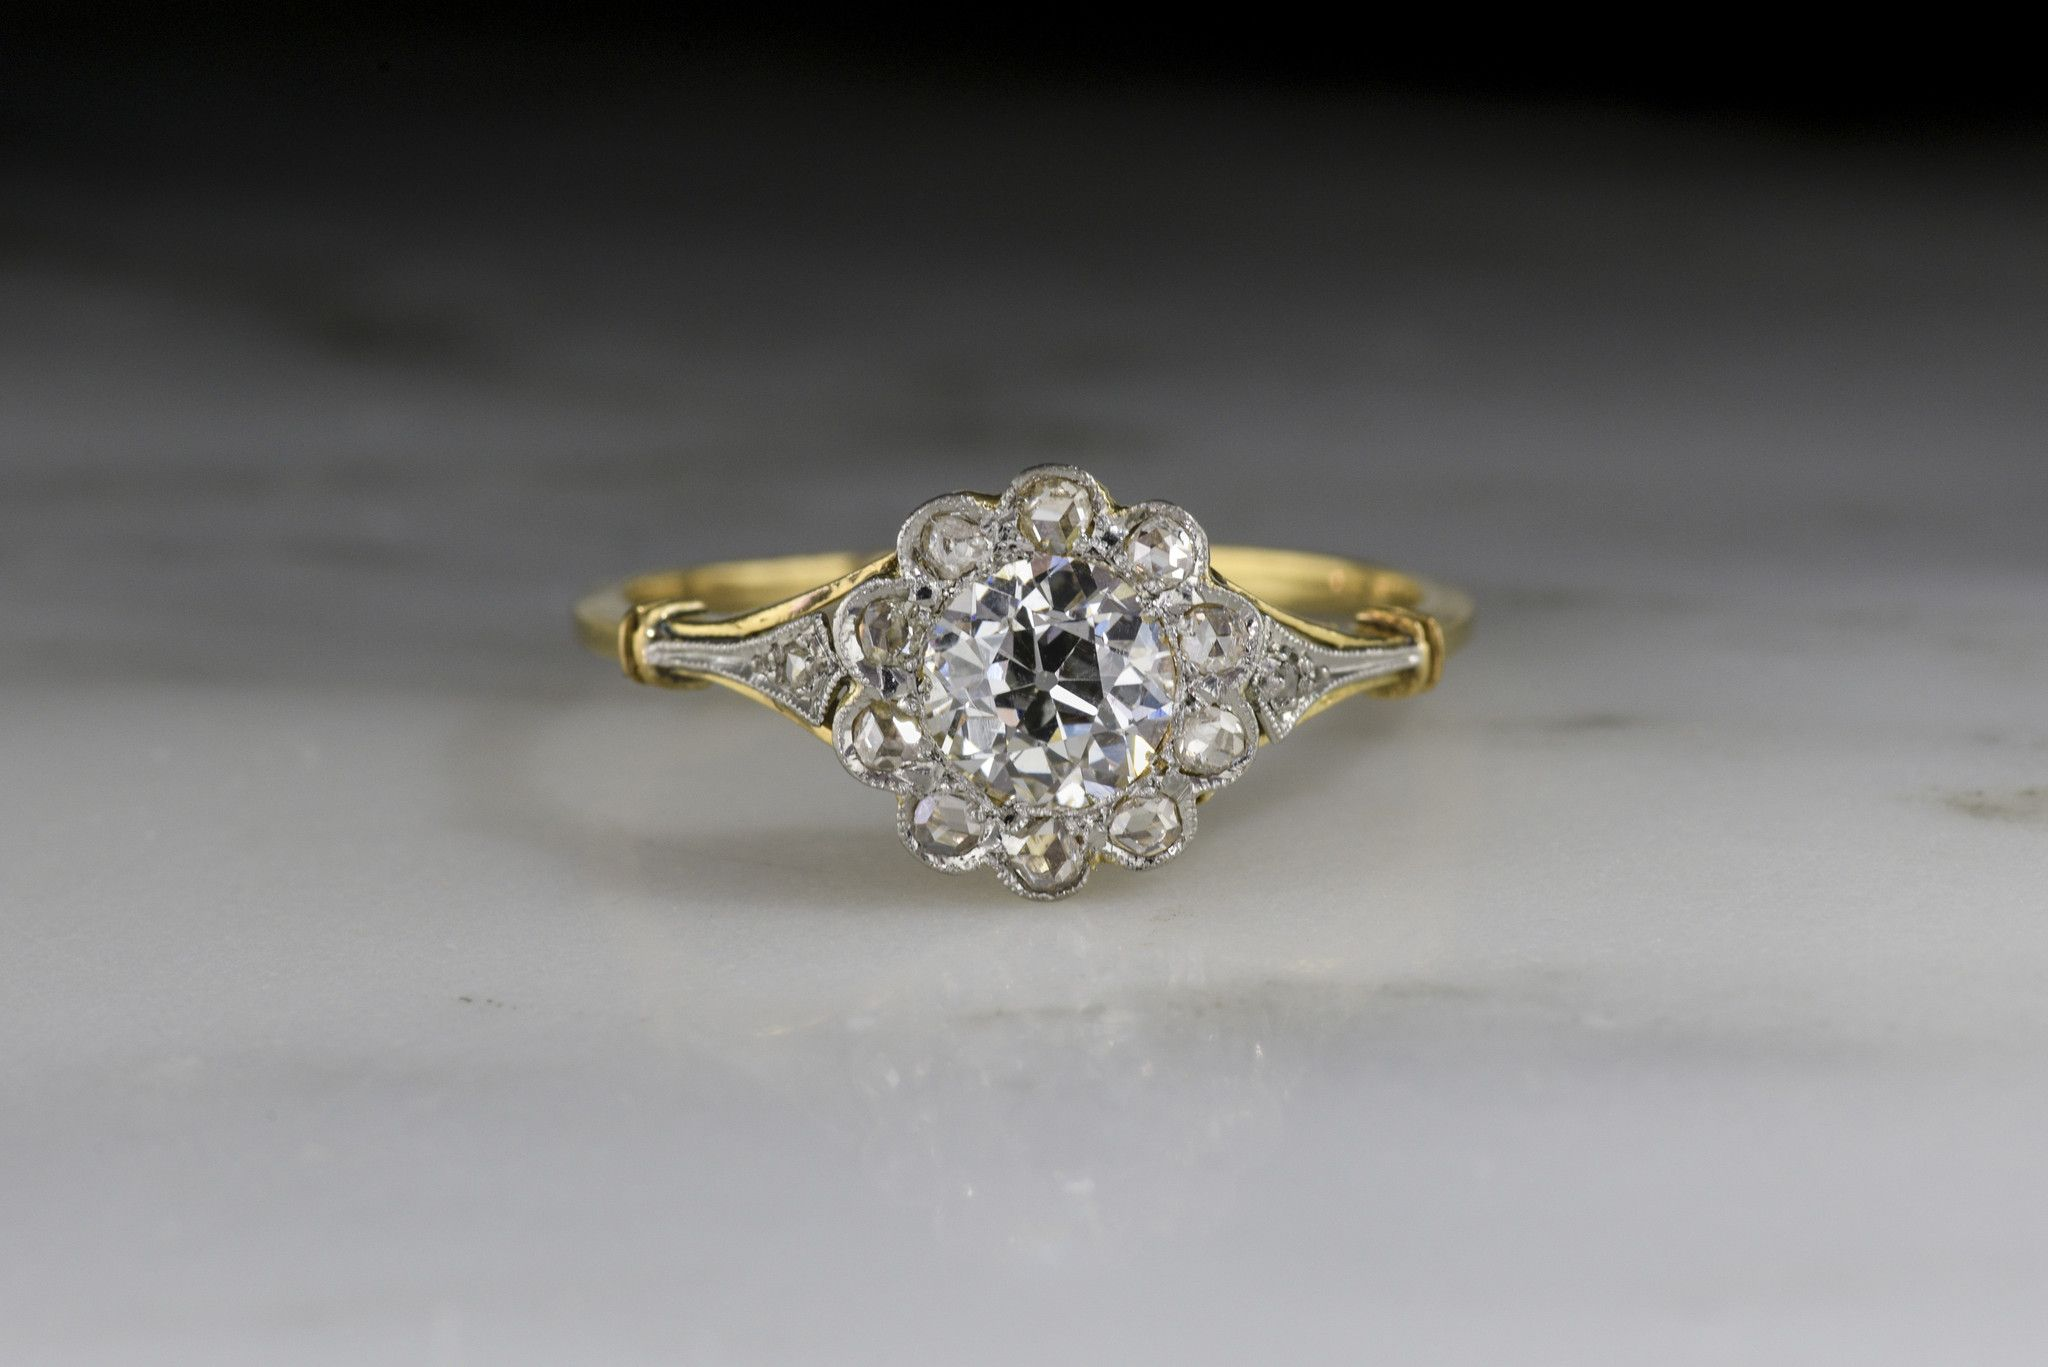 f24ad5cb6 Antique French Engagement Ring with a GIA Certified Old European Cut  Diamond Center and Rose Cut Halo from Pebble and Polish